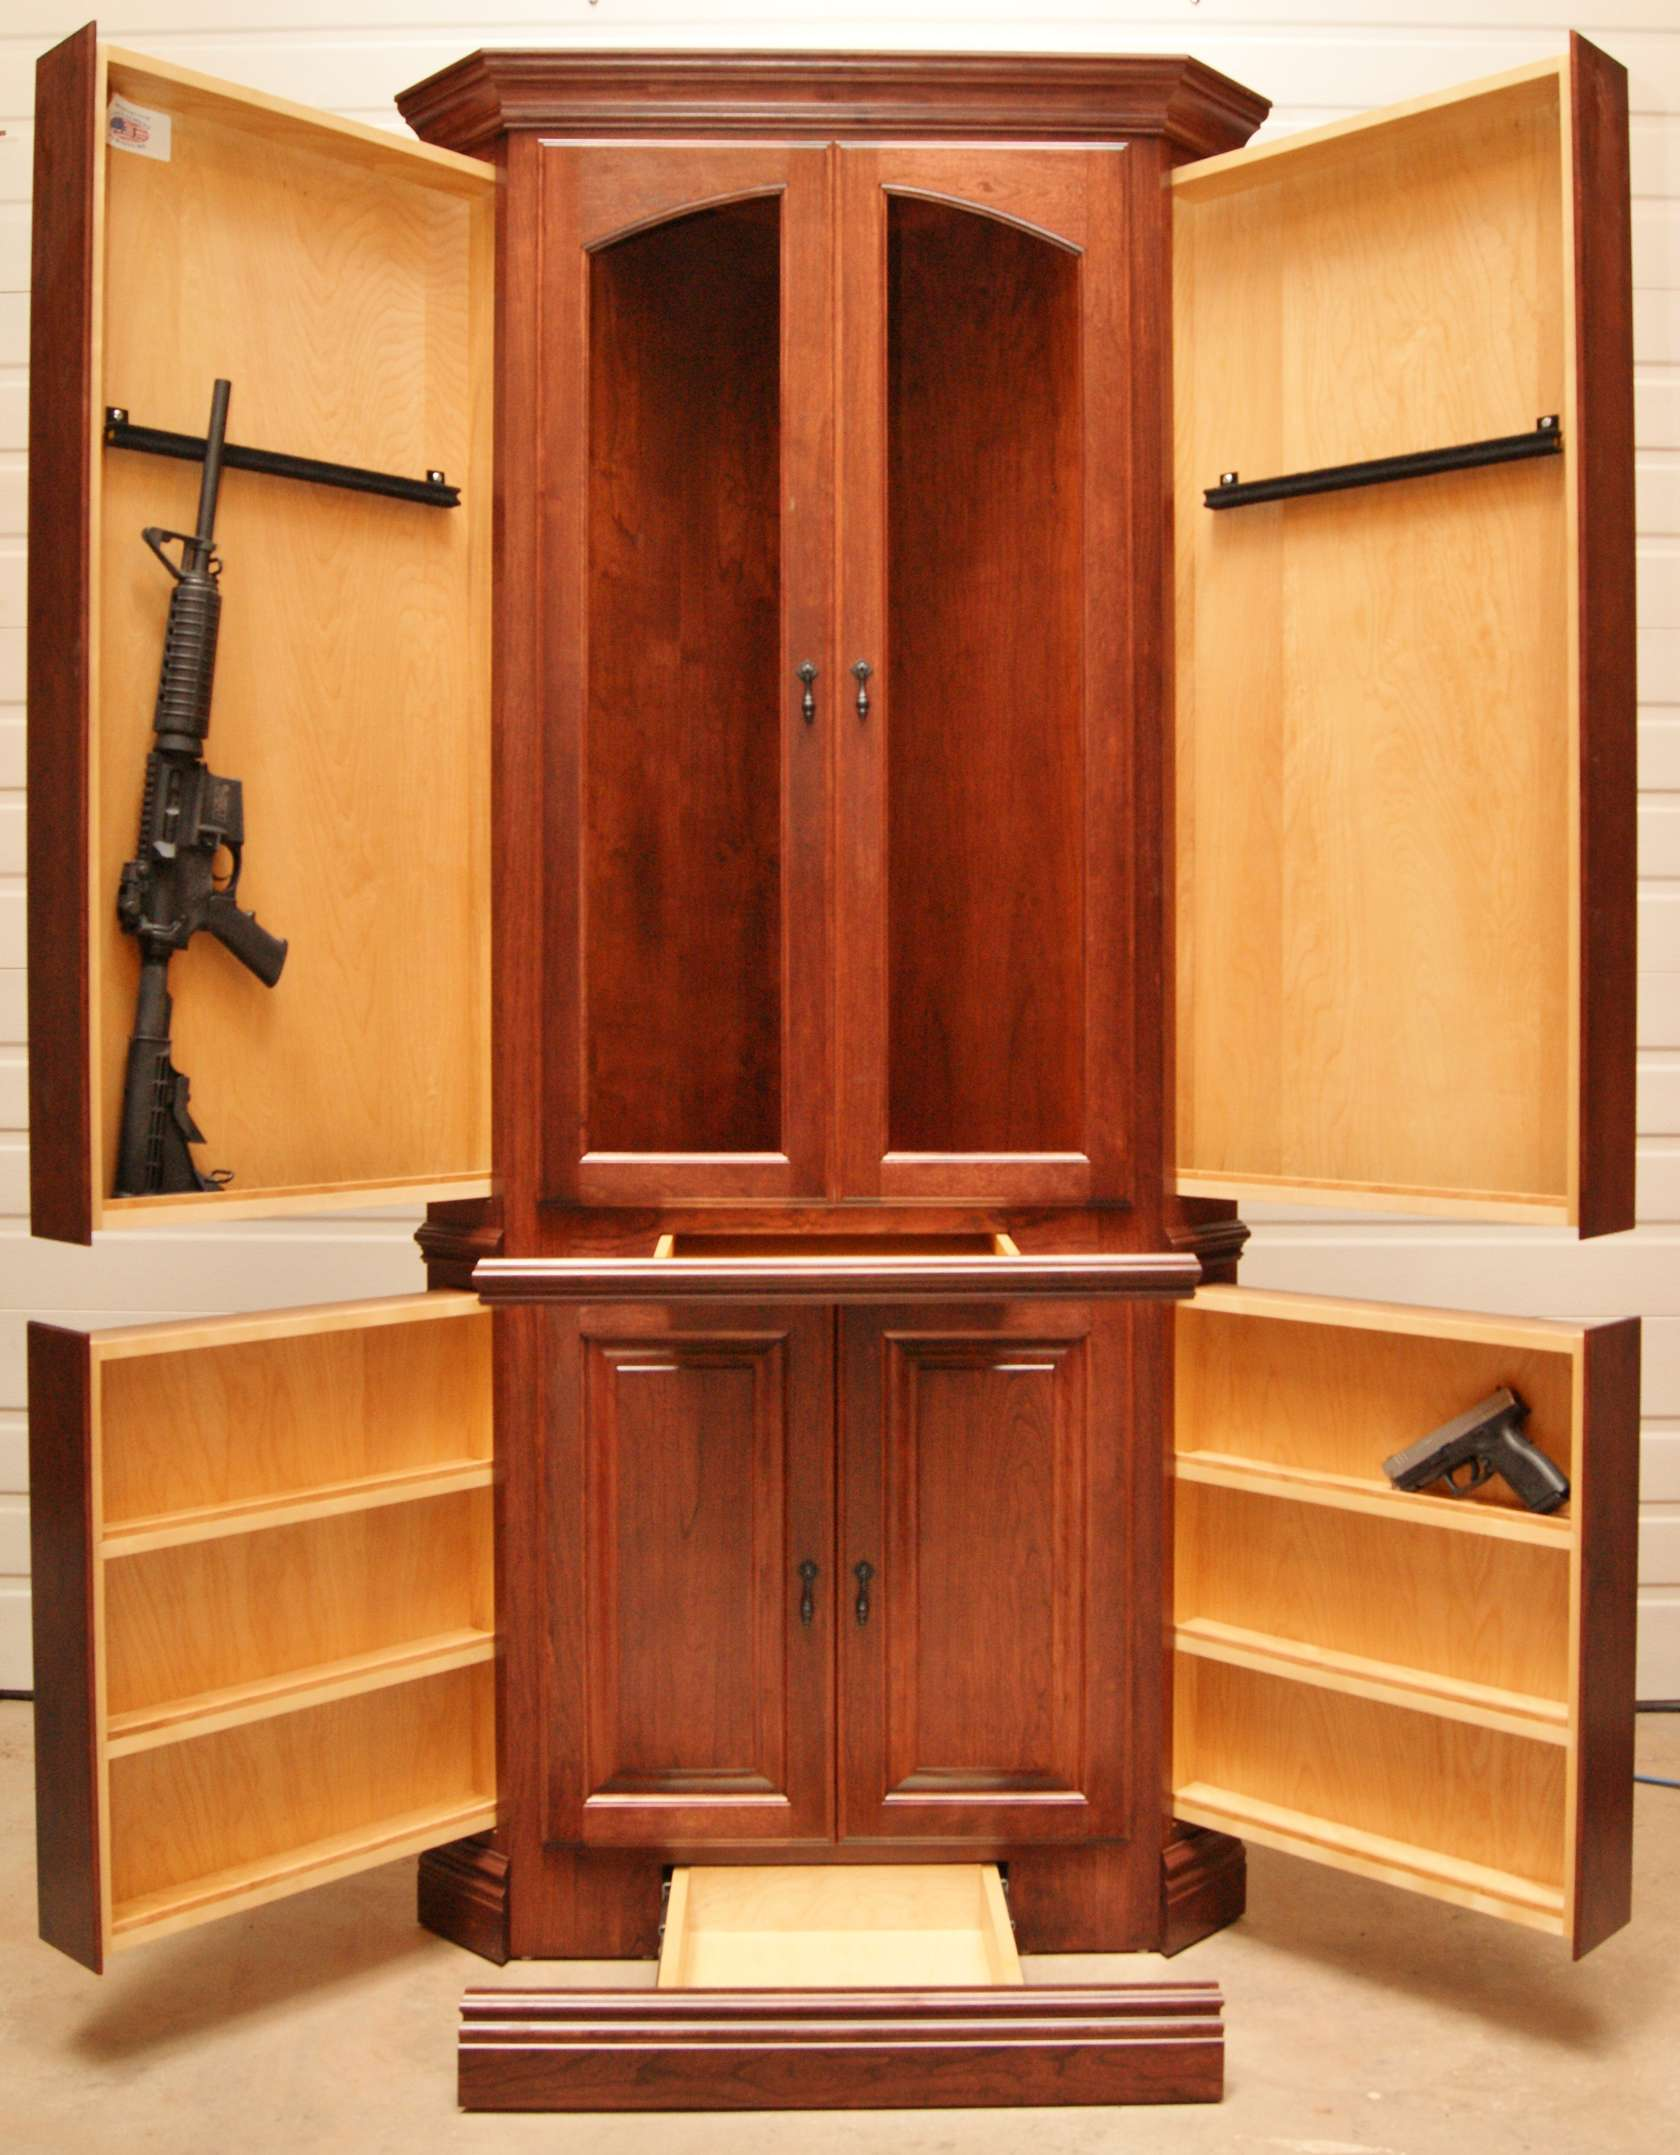 Firearm Concealment Furniture Now You Too Can Pack Heat